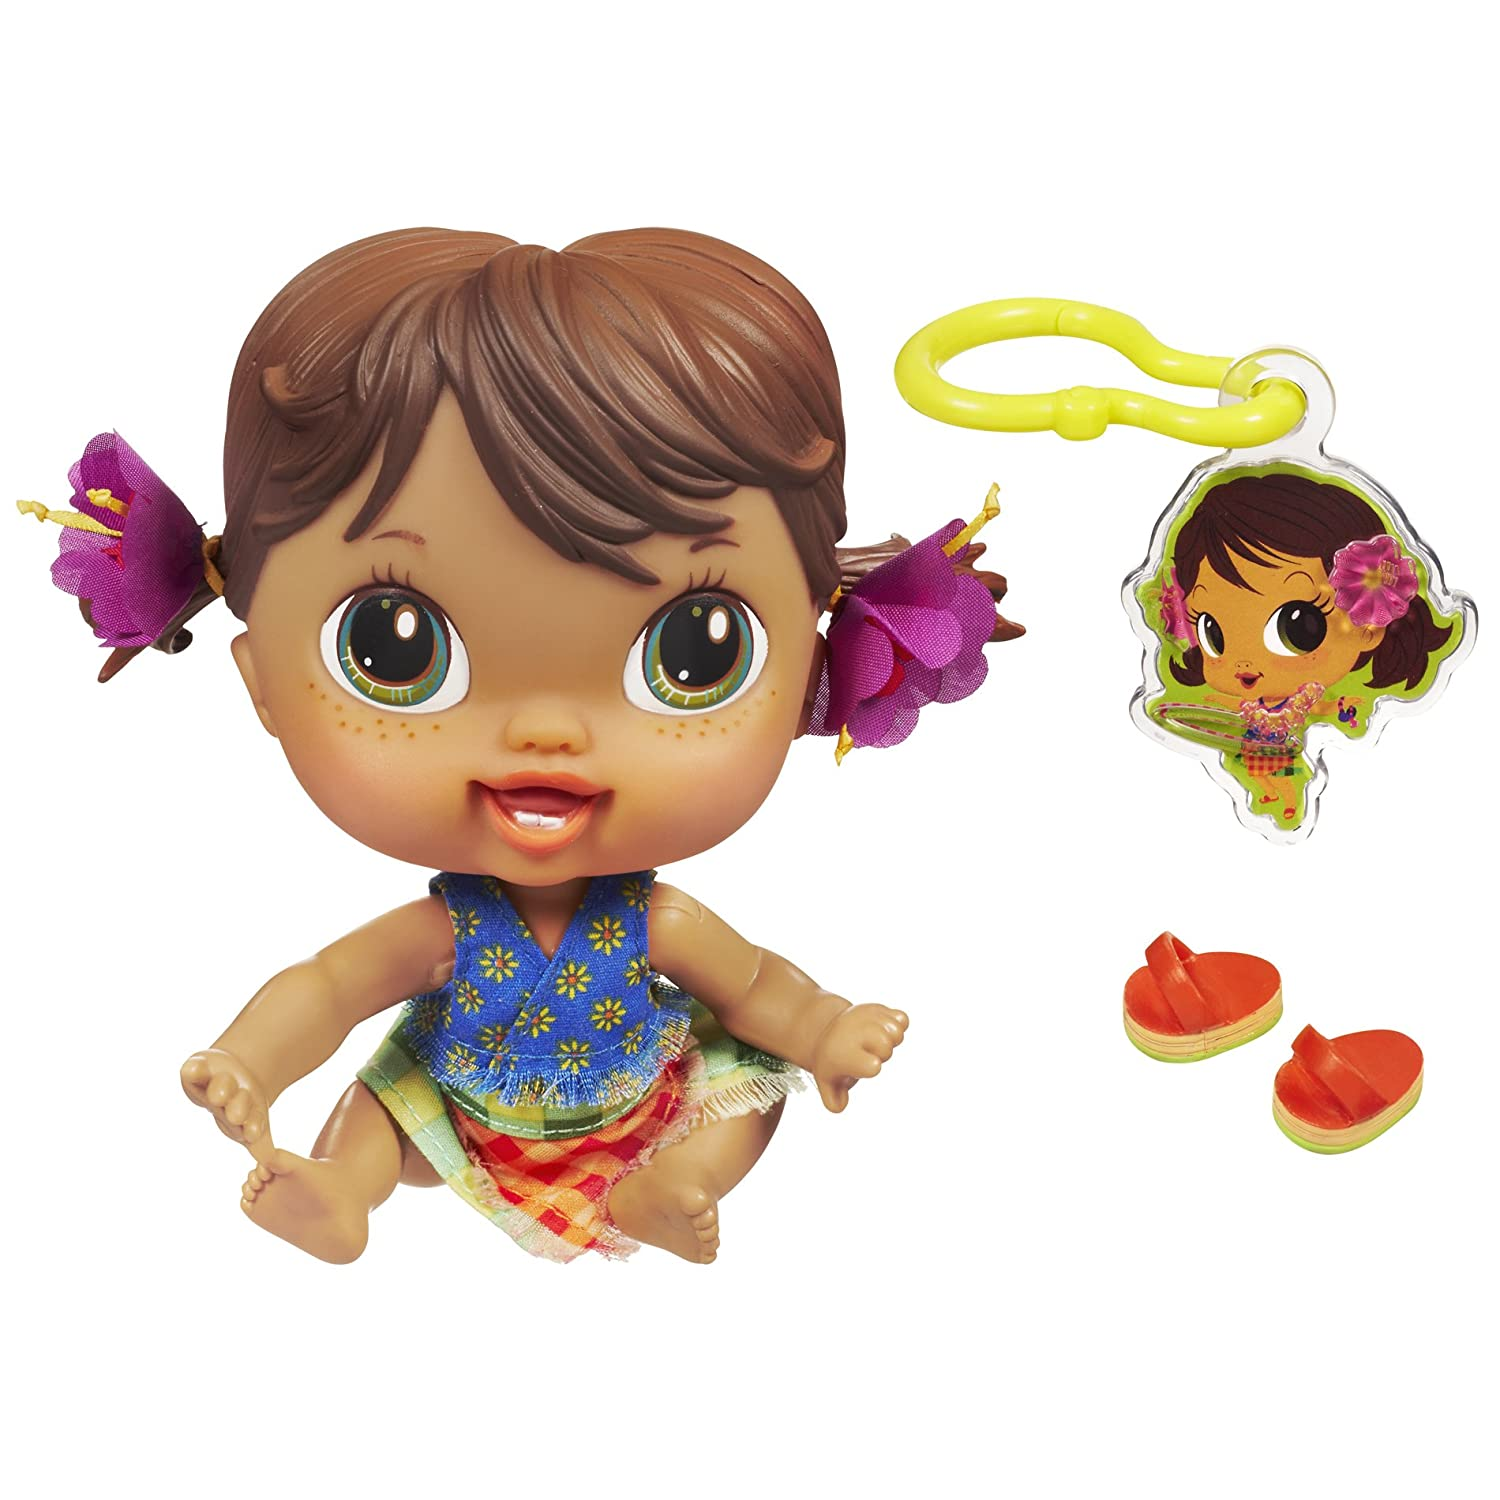 Uncategorized Criblife amazon com baby alive crib life friendship dolls hailey hula toys games